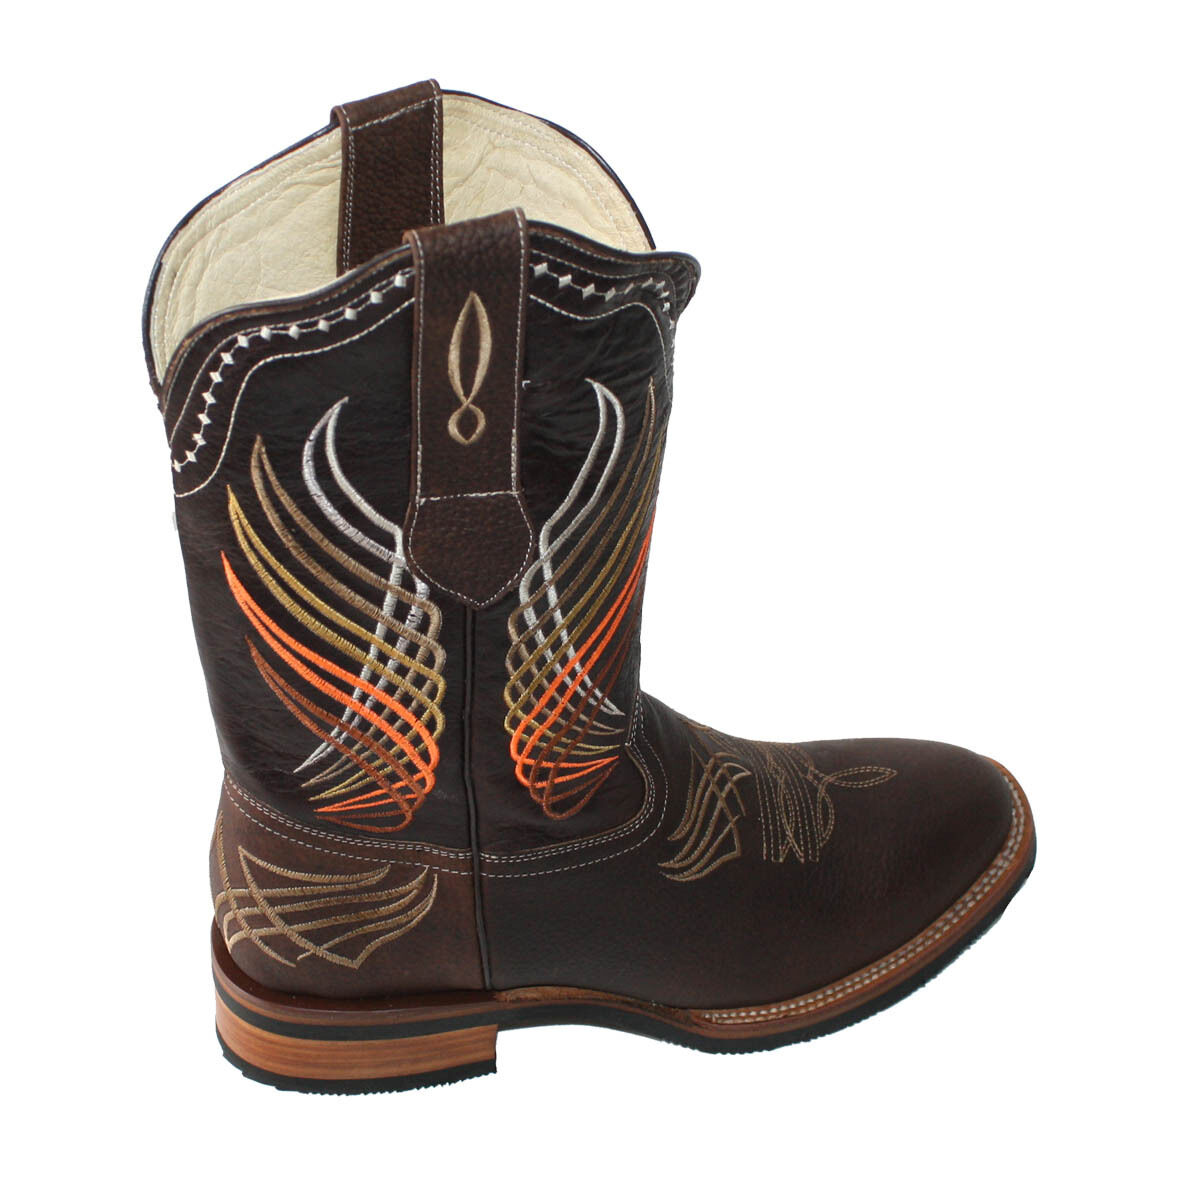 Men's Leather Cowboy Boots Animal Print  SPECIAL PRICE 99.99 Style #S0101